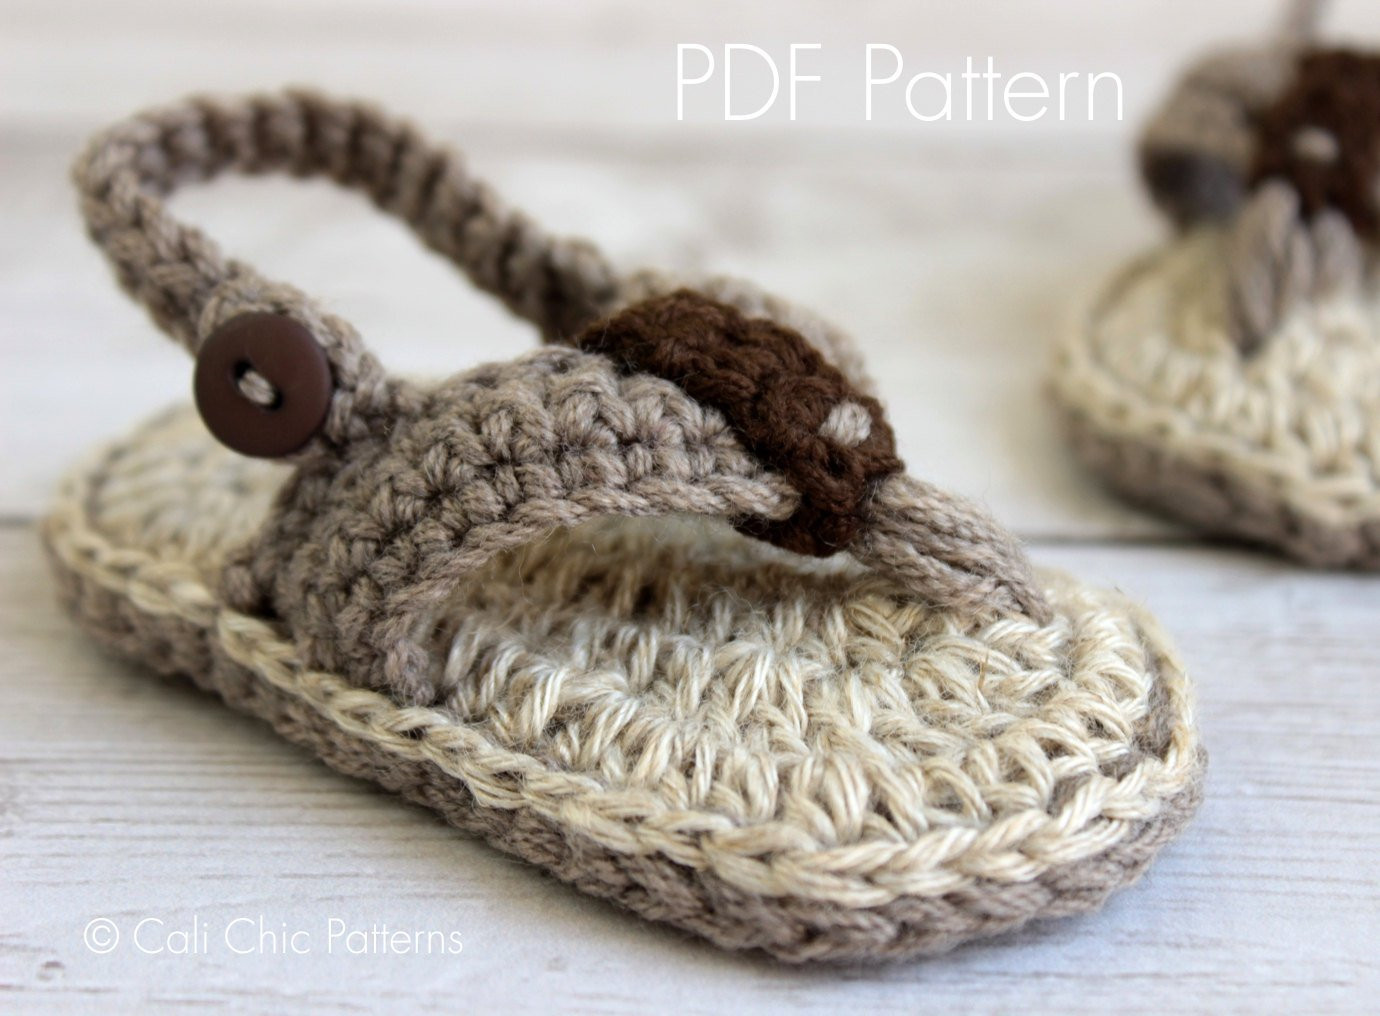 Crochet Baby Sandals Inspirational Crochet Baby Flip Flops Pattern 312 Malibu Baby Flip Of New 46 Models Crochet Baby Sandals